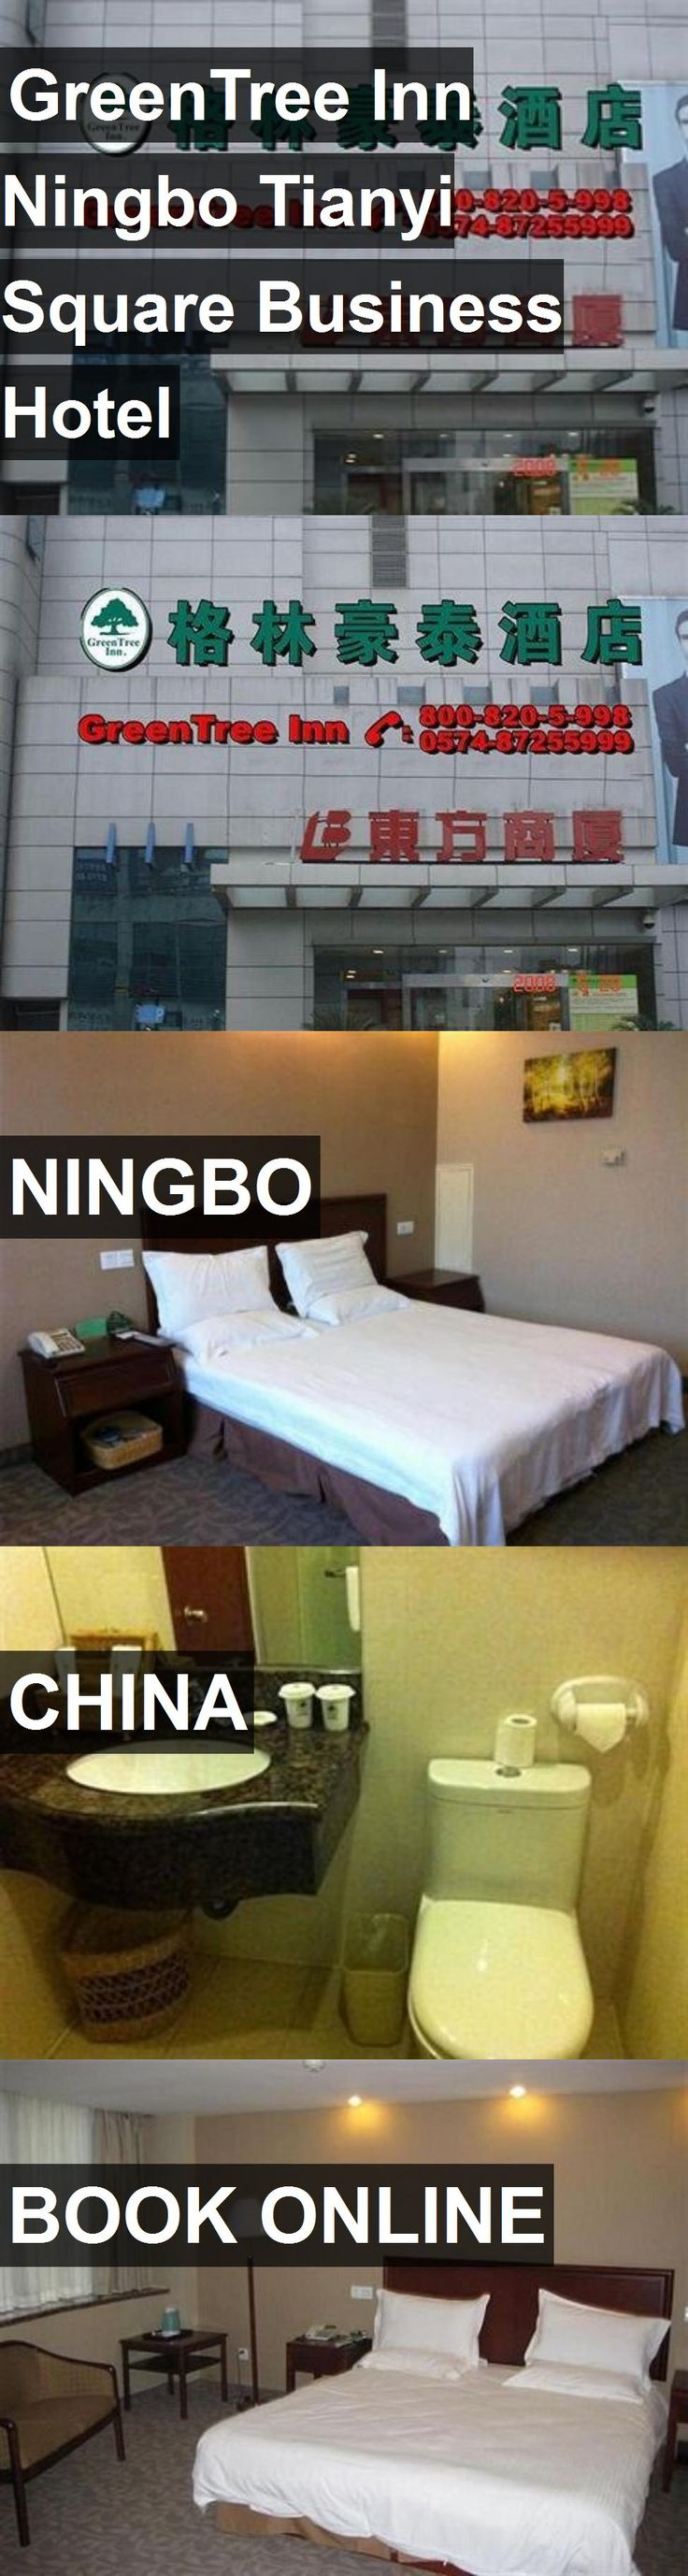 Hotel GreenTree Inn Ningbo Tianyi Square Business Hotel in Ningbo, China. For more information, photos, reviews and best prices please follow the link. #China #Ningbo #GreenTreeInnNingboTianyiSquareBusinessHotel #hotel #travel #vacation